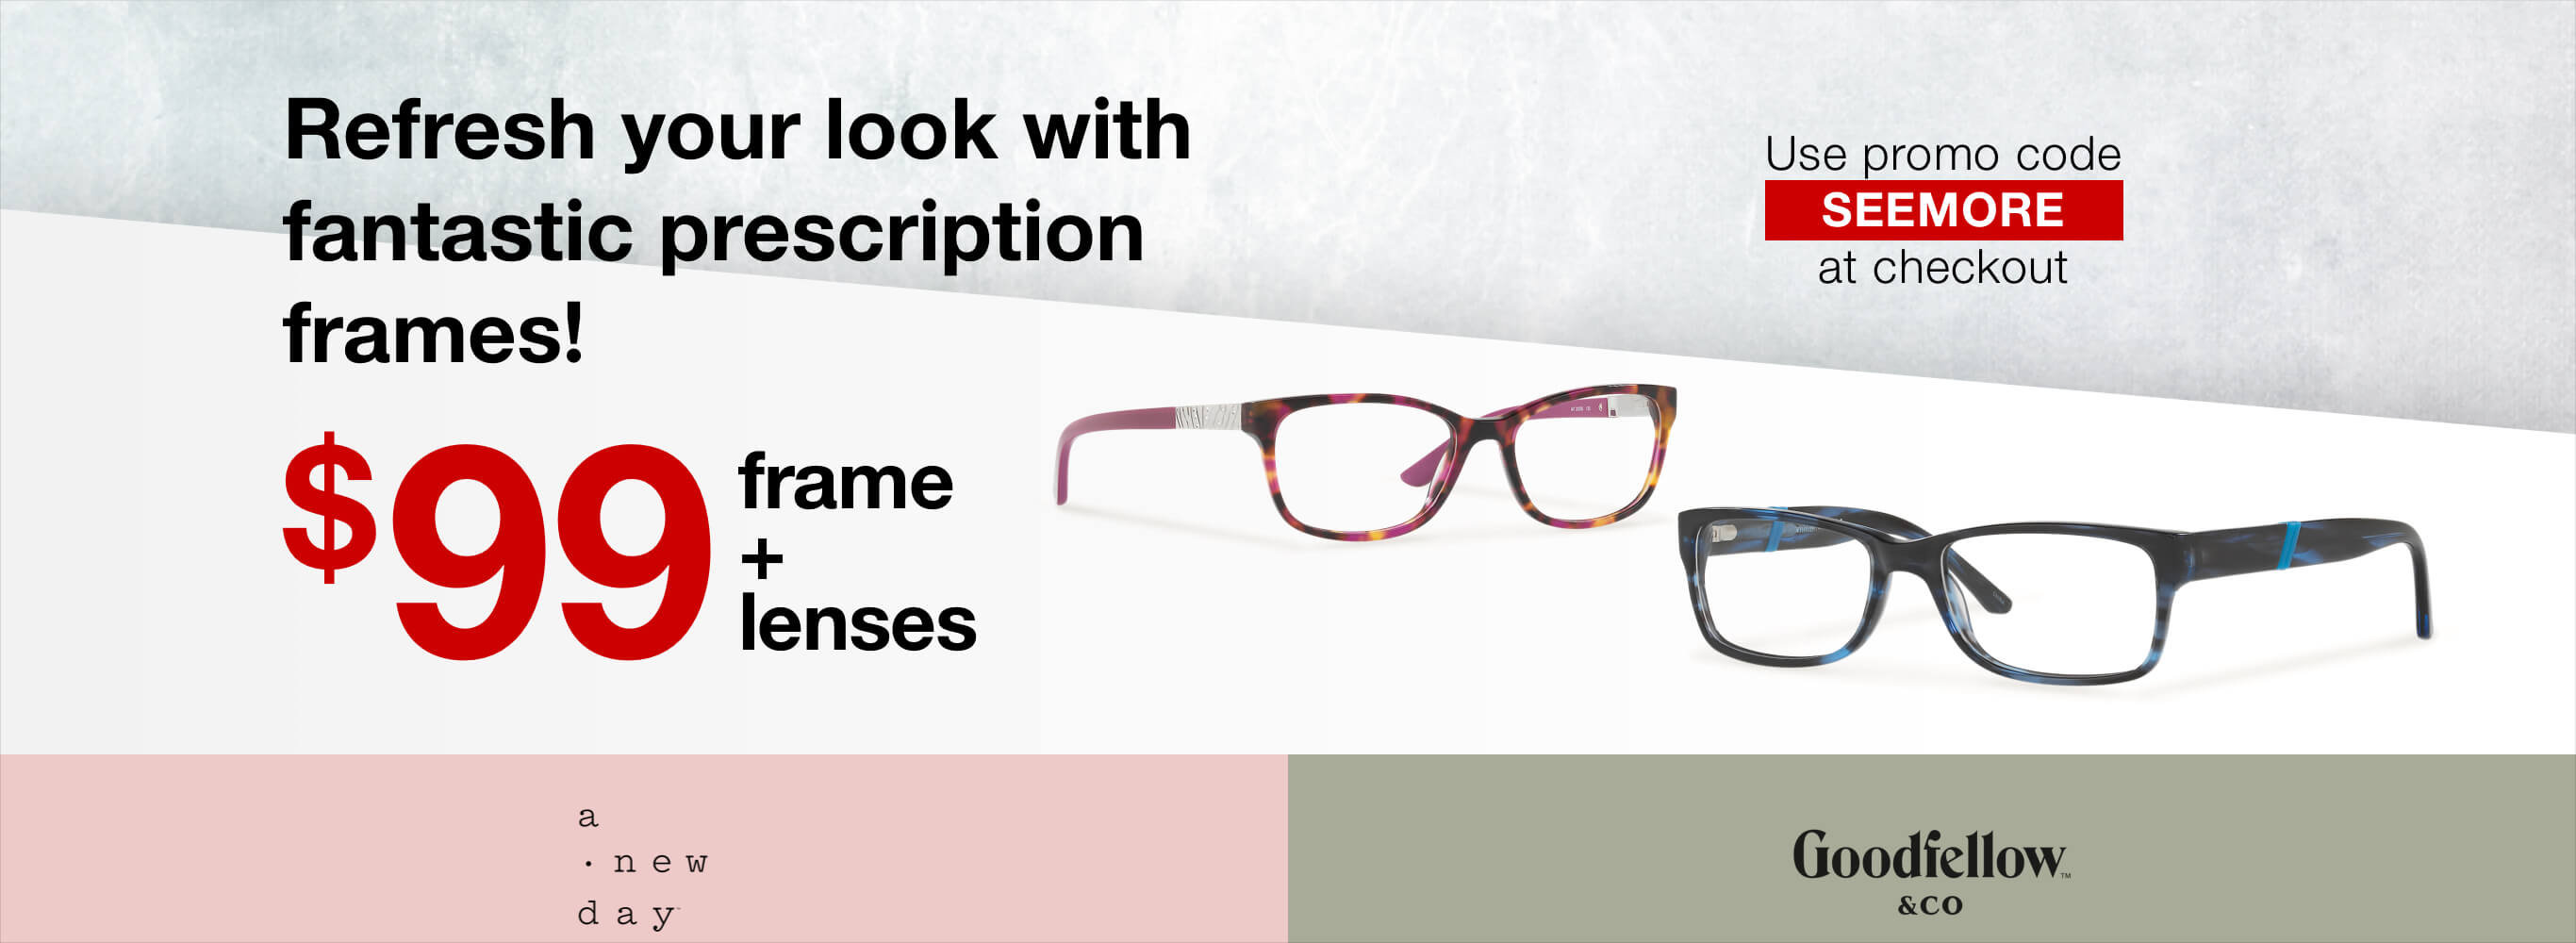 d90a8b16691b Glasses, Sunglasses, Contacts & Eyewear Online | Target Optical